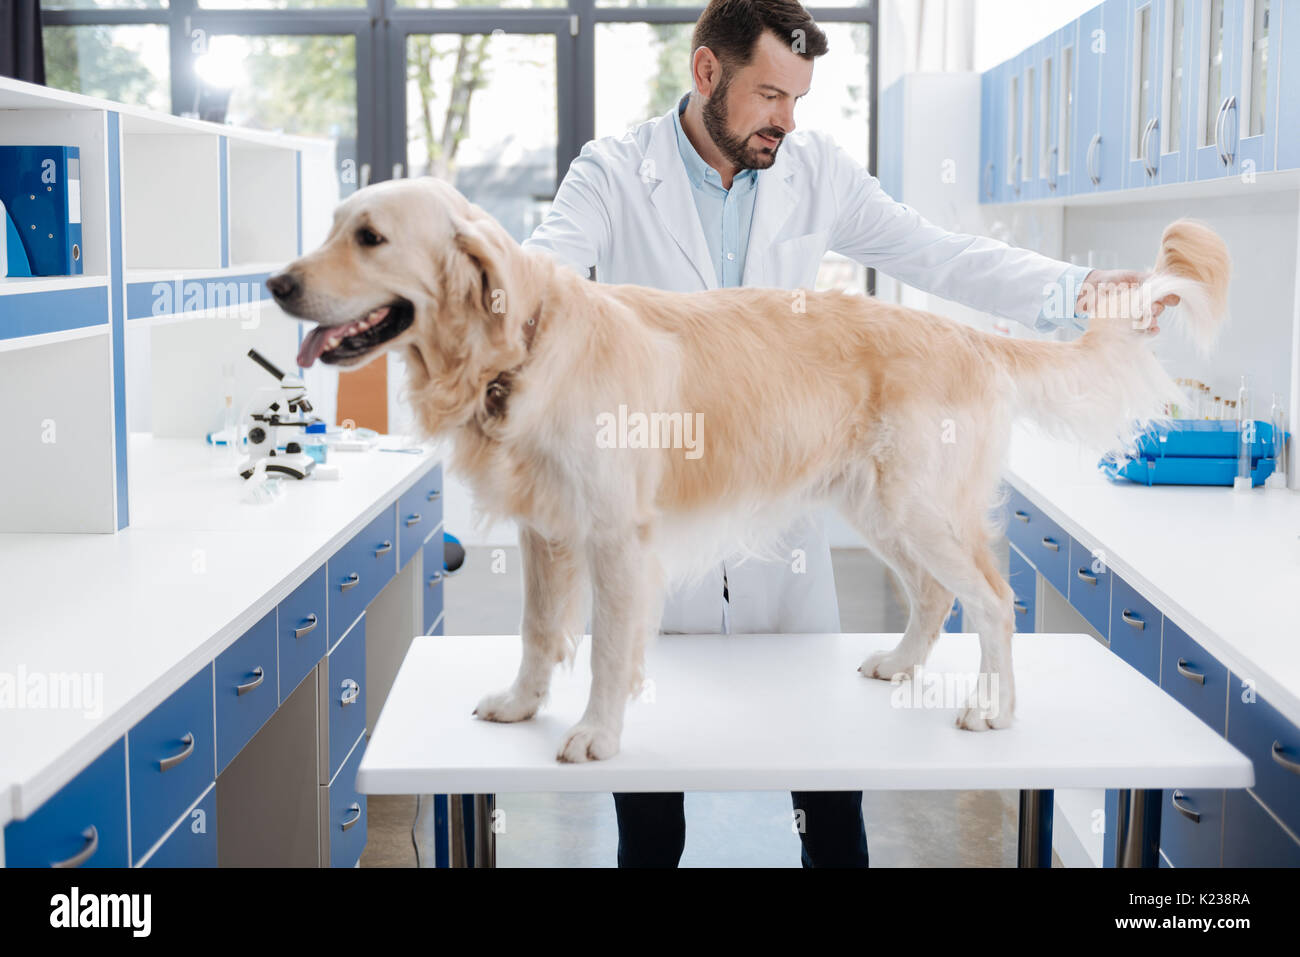 Competent vet checking hair of big dog - Stock Image